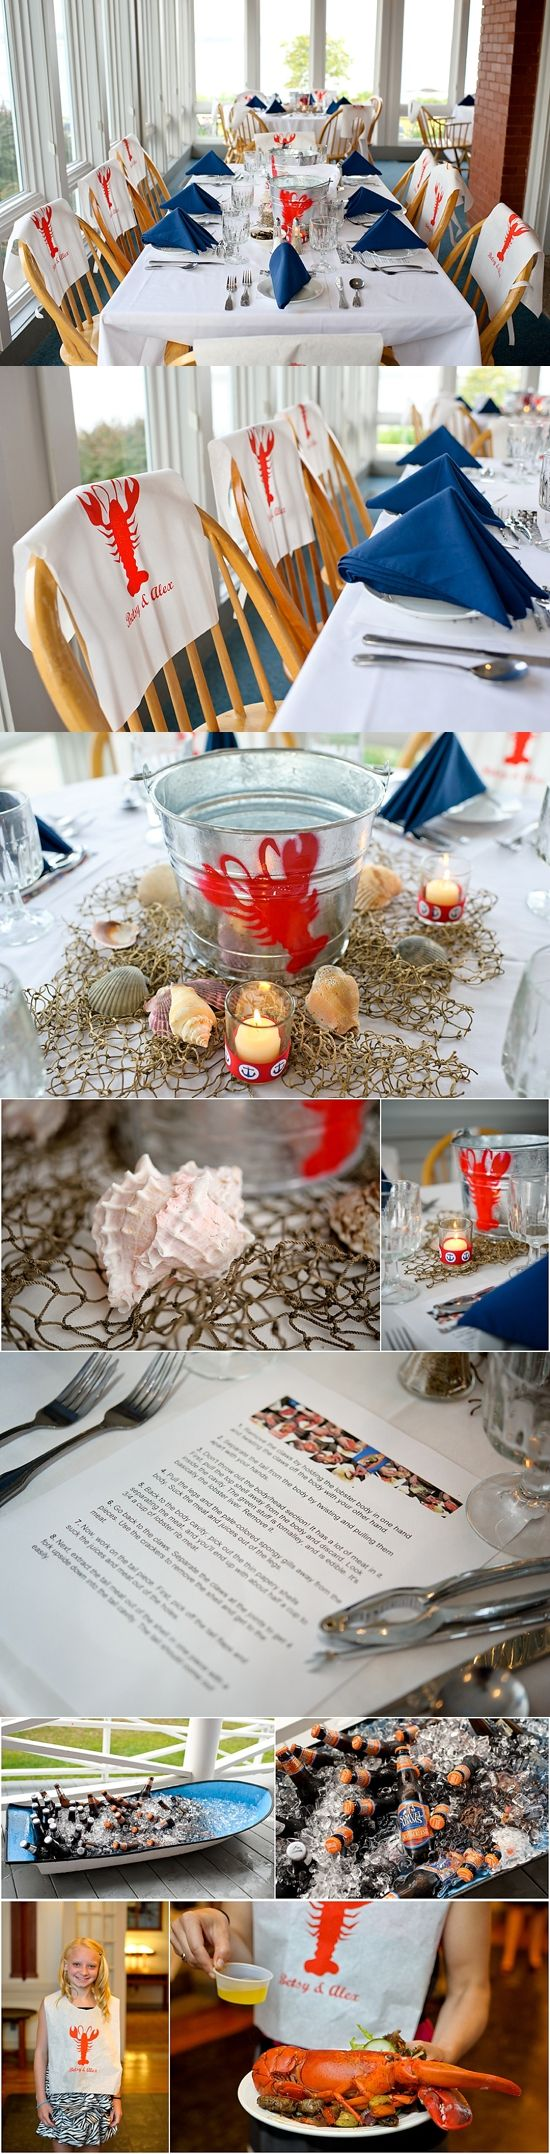 Maine Lobster bake Rehearsal Dinner Portland Maine Wedding Coastal Maine Wedding Red White and Blue How to eat a lobster Lobster Bibs